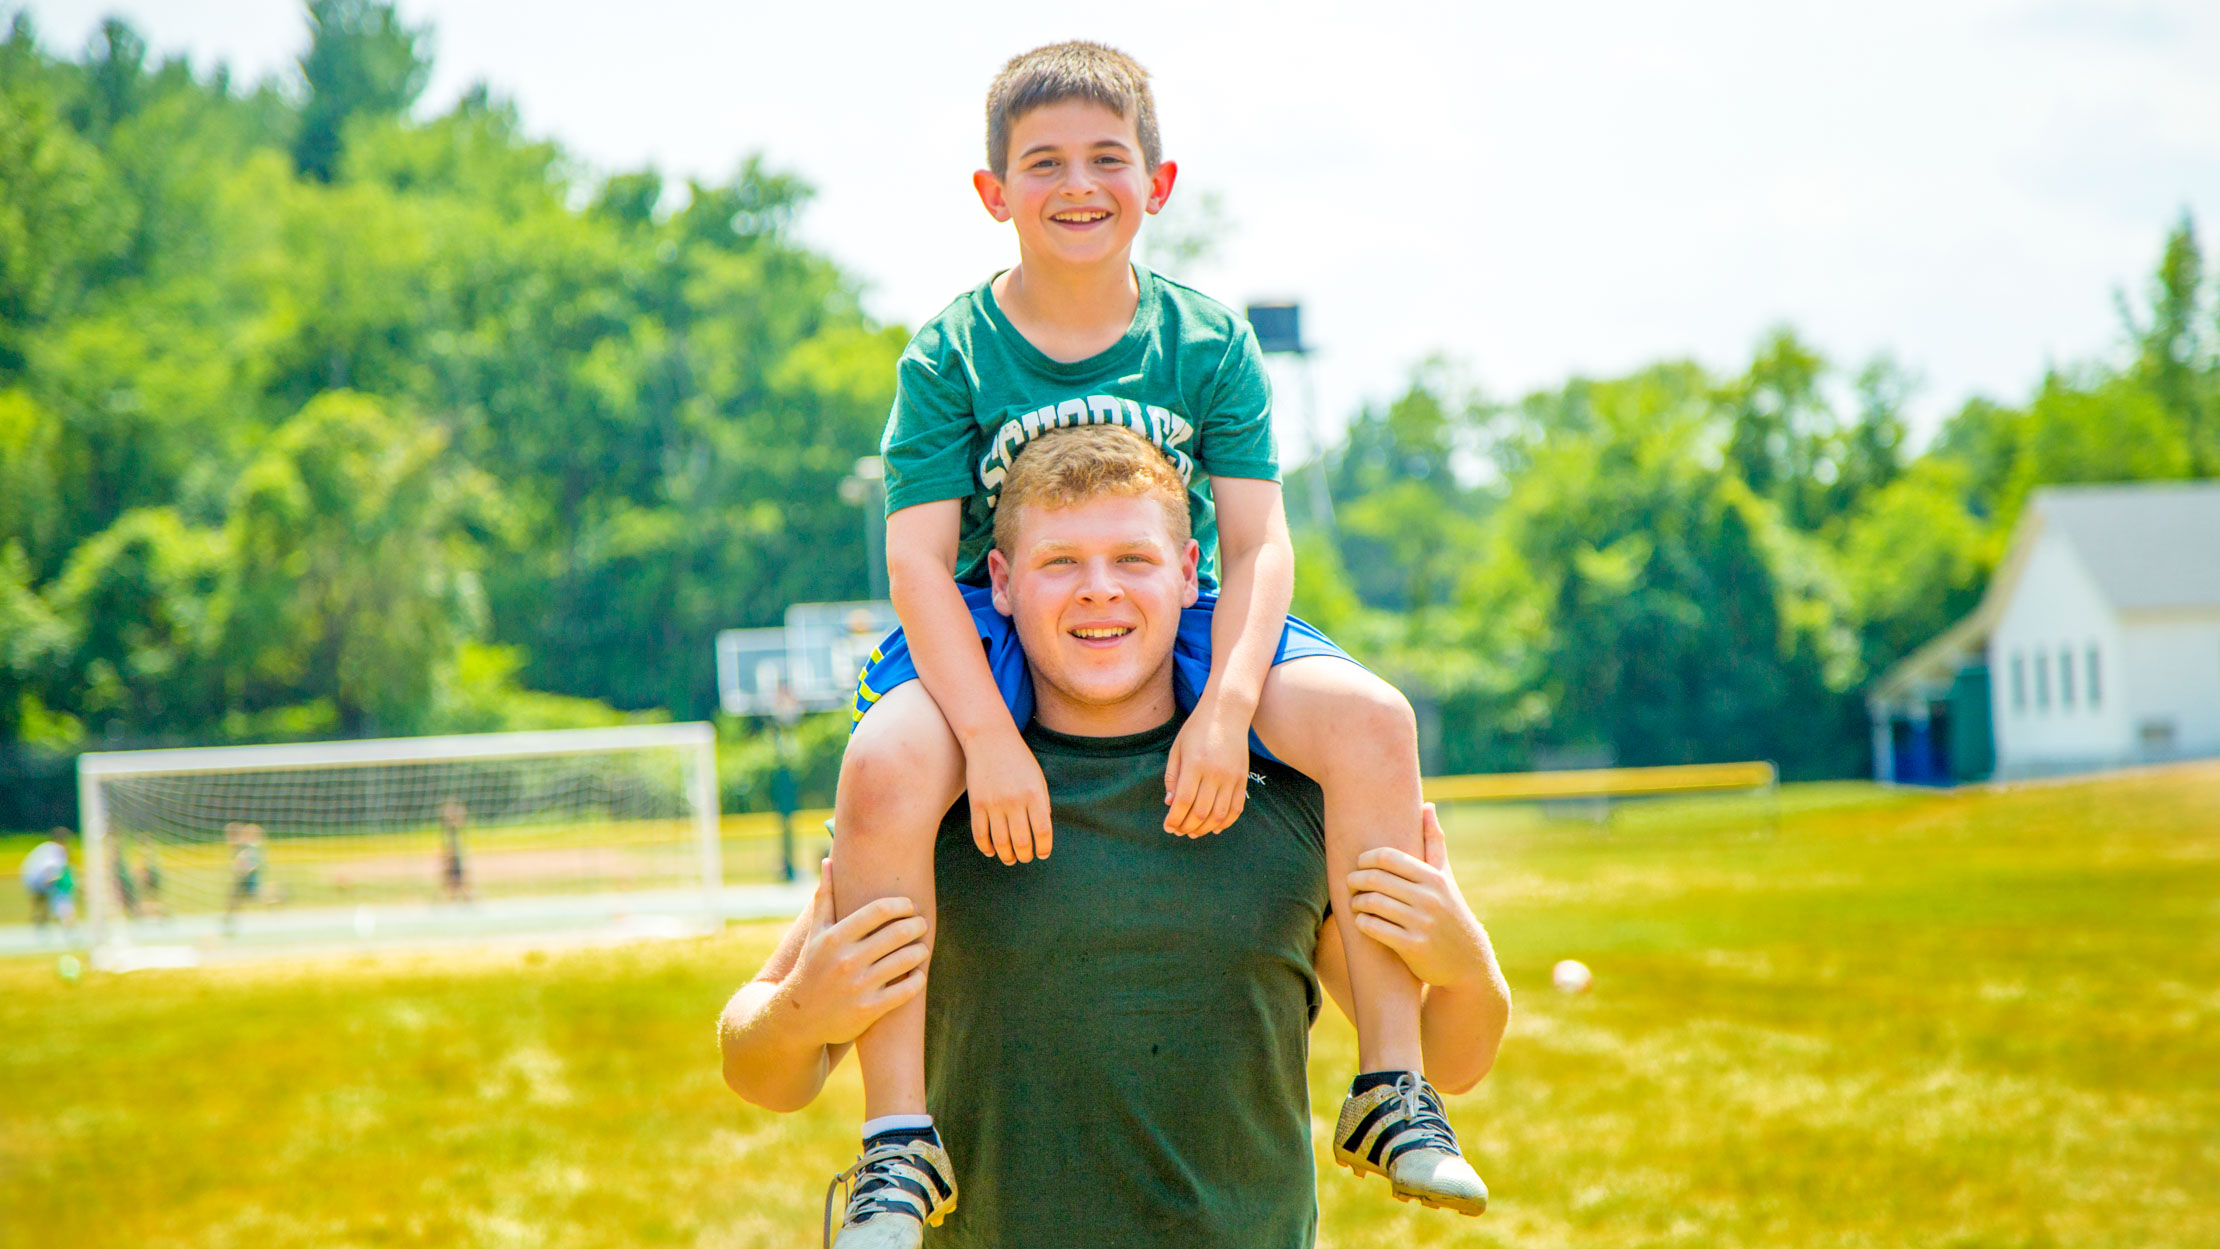 Counselor carries camper on his shoulders